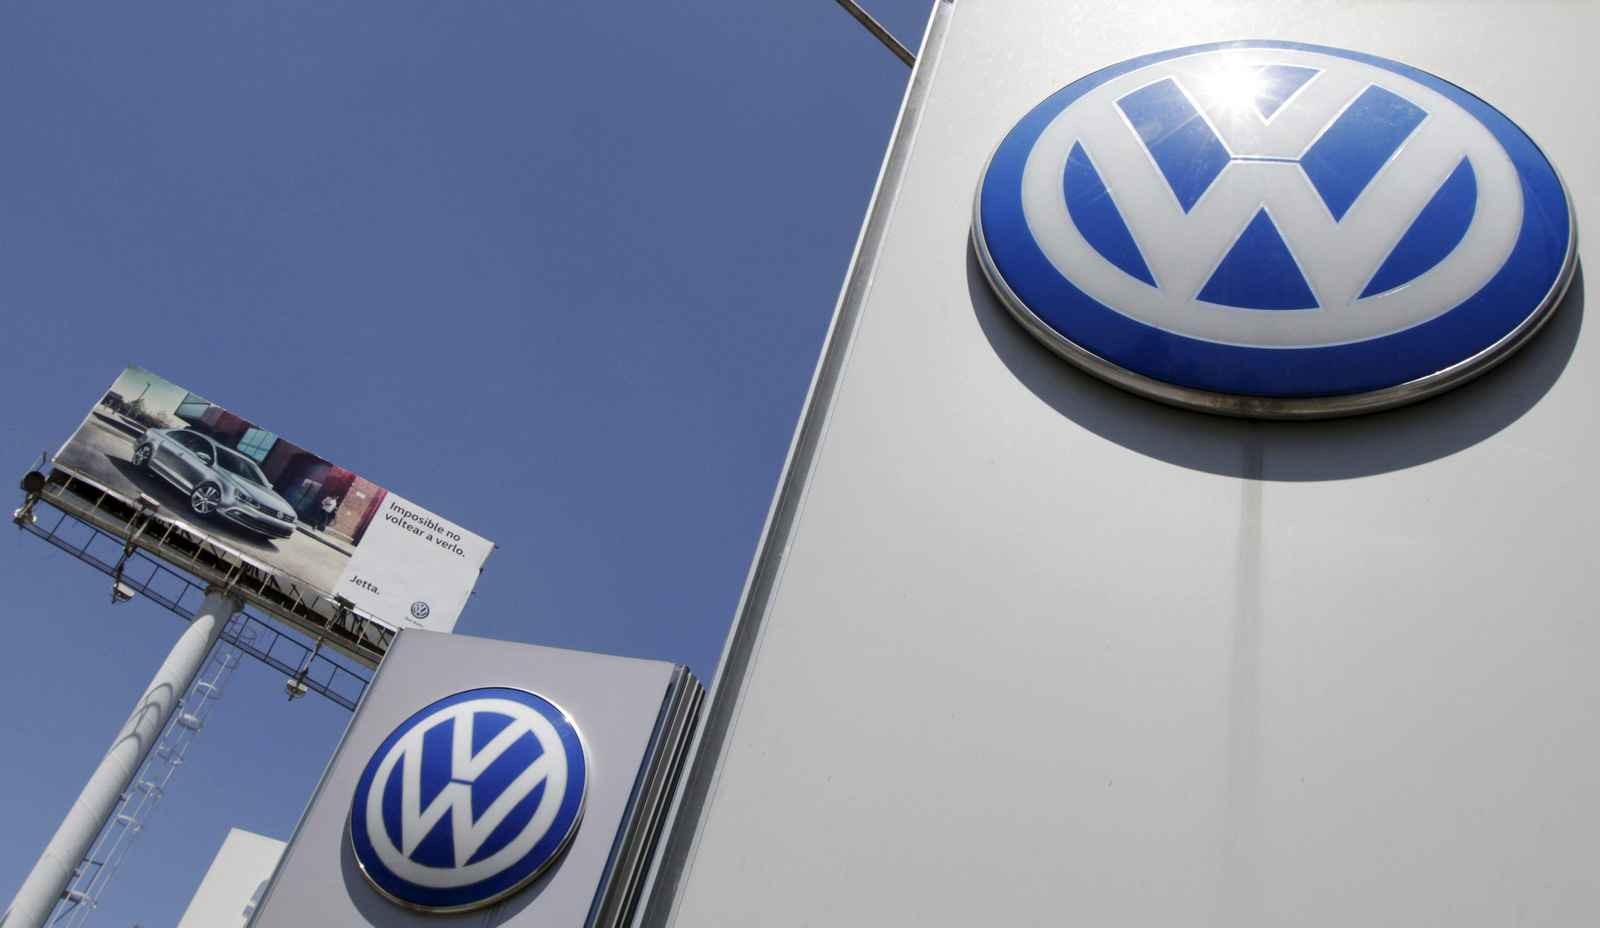 The logo of German carmaker Volkswagen is seen at the Volkswagen (VW) automobile manufacturing plant in Puebla near Mexico City September 23, 2015. Mexico is checking to see if Volkswagen has complied with its emissions standards and will act if it finds anomalies, Mexico's environment minister Rafael Pacchiano said on Wednesday. Volkswagen, the world's biggest carmaker, has admitted to U.S. regulators that it programmed computers in its cars to detect when they were being tested and alter the running of their diesel engines to conceal their true emissions. REUTERS/Imelda Medina